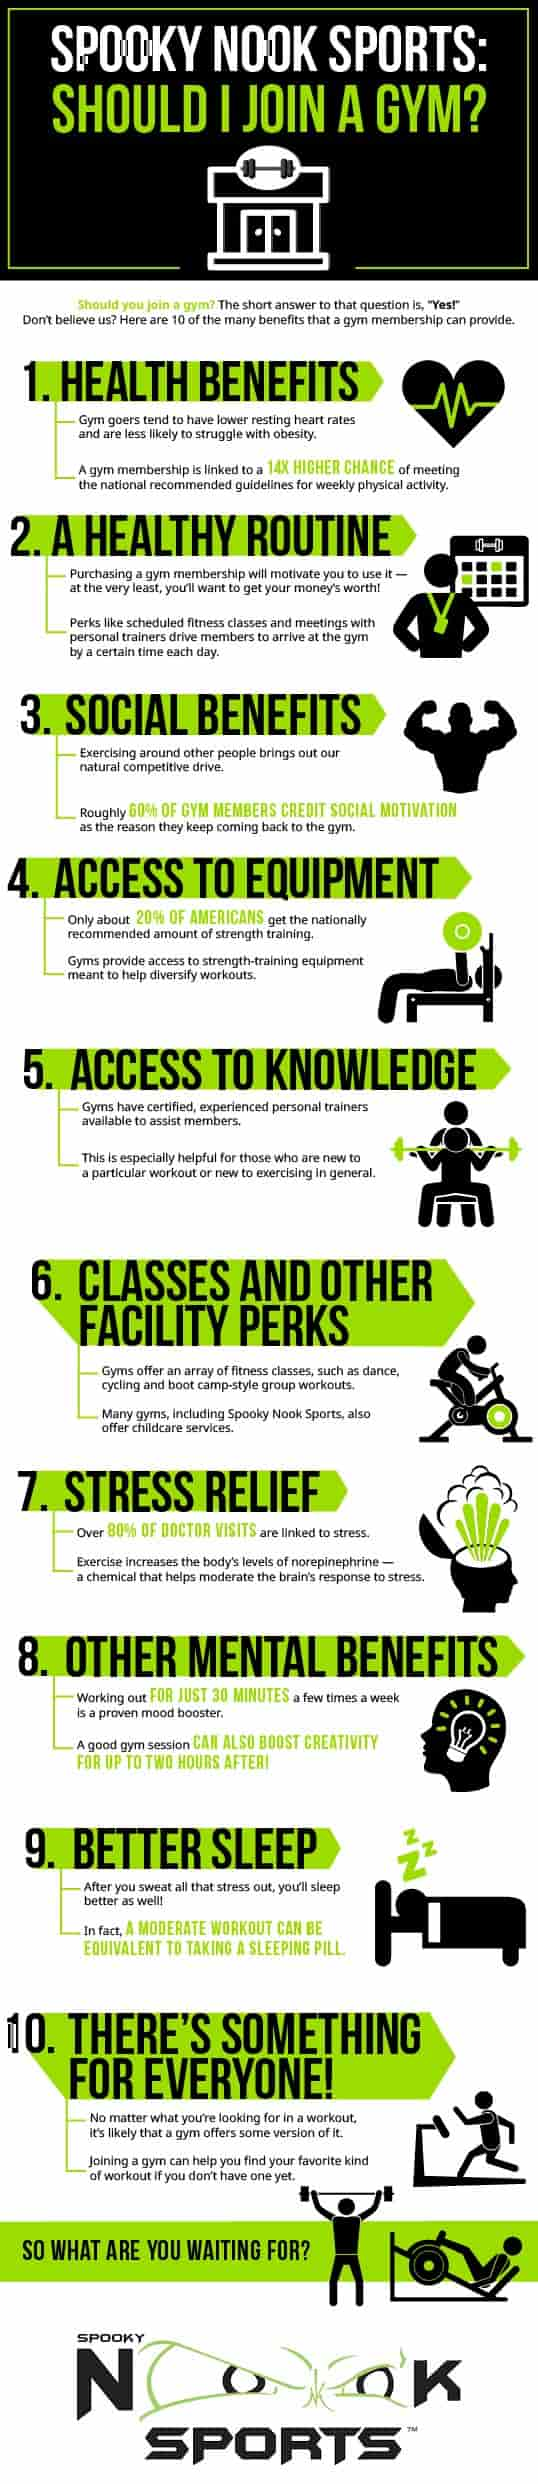 overview of benefits of joining a gym